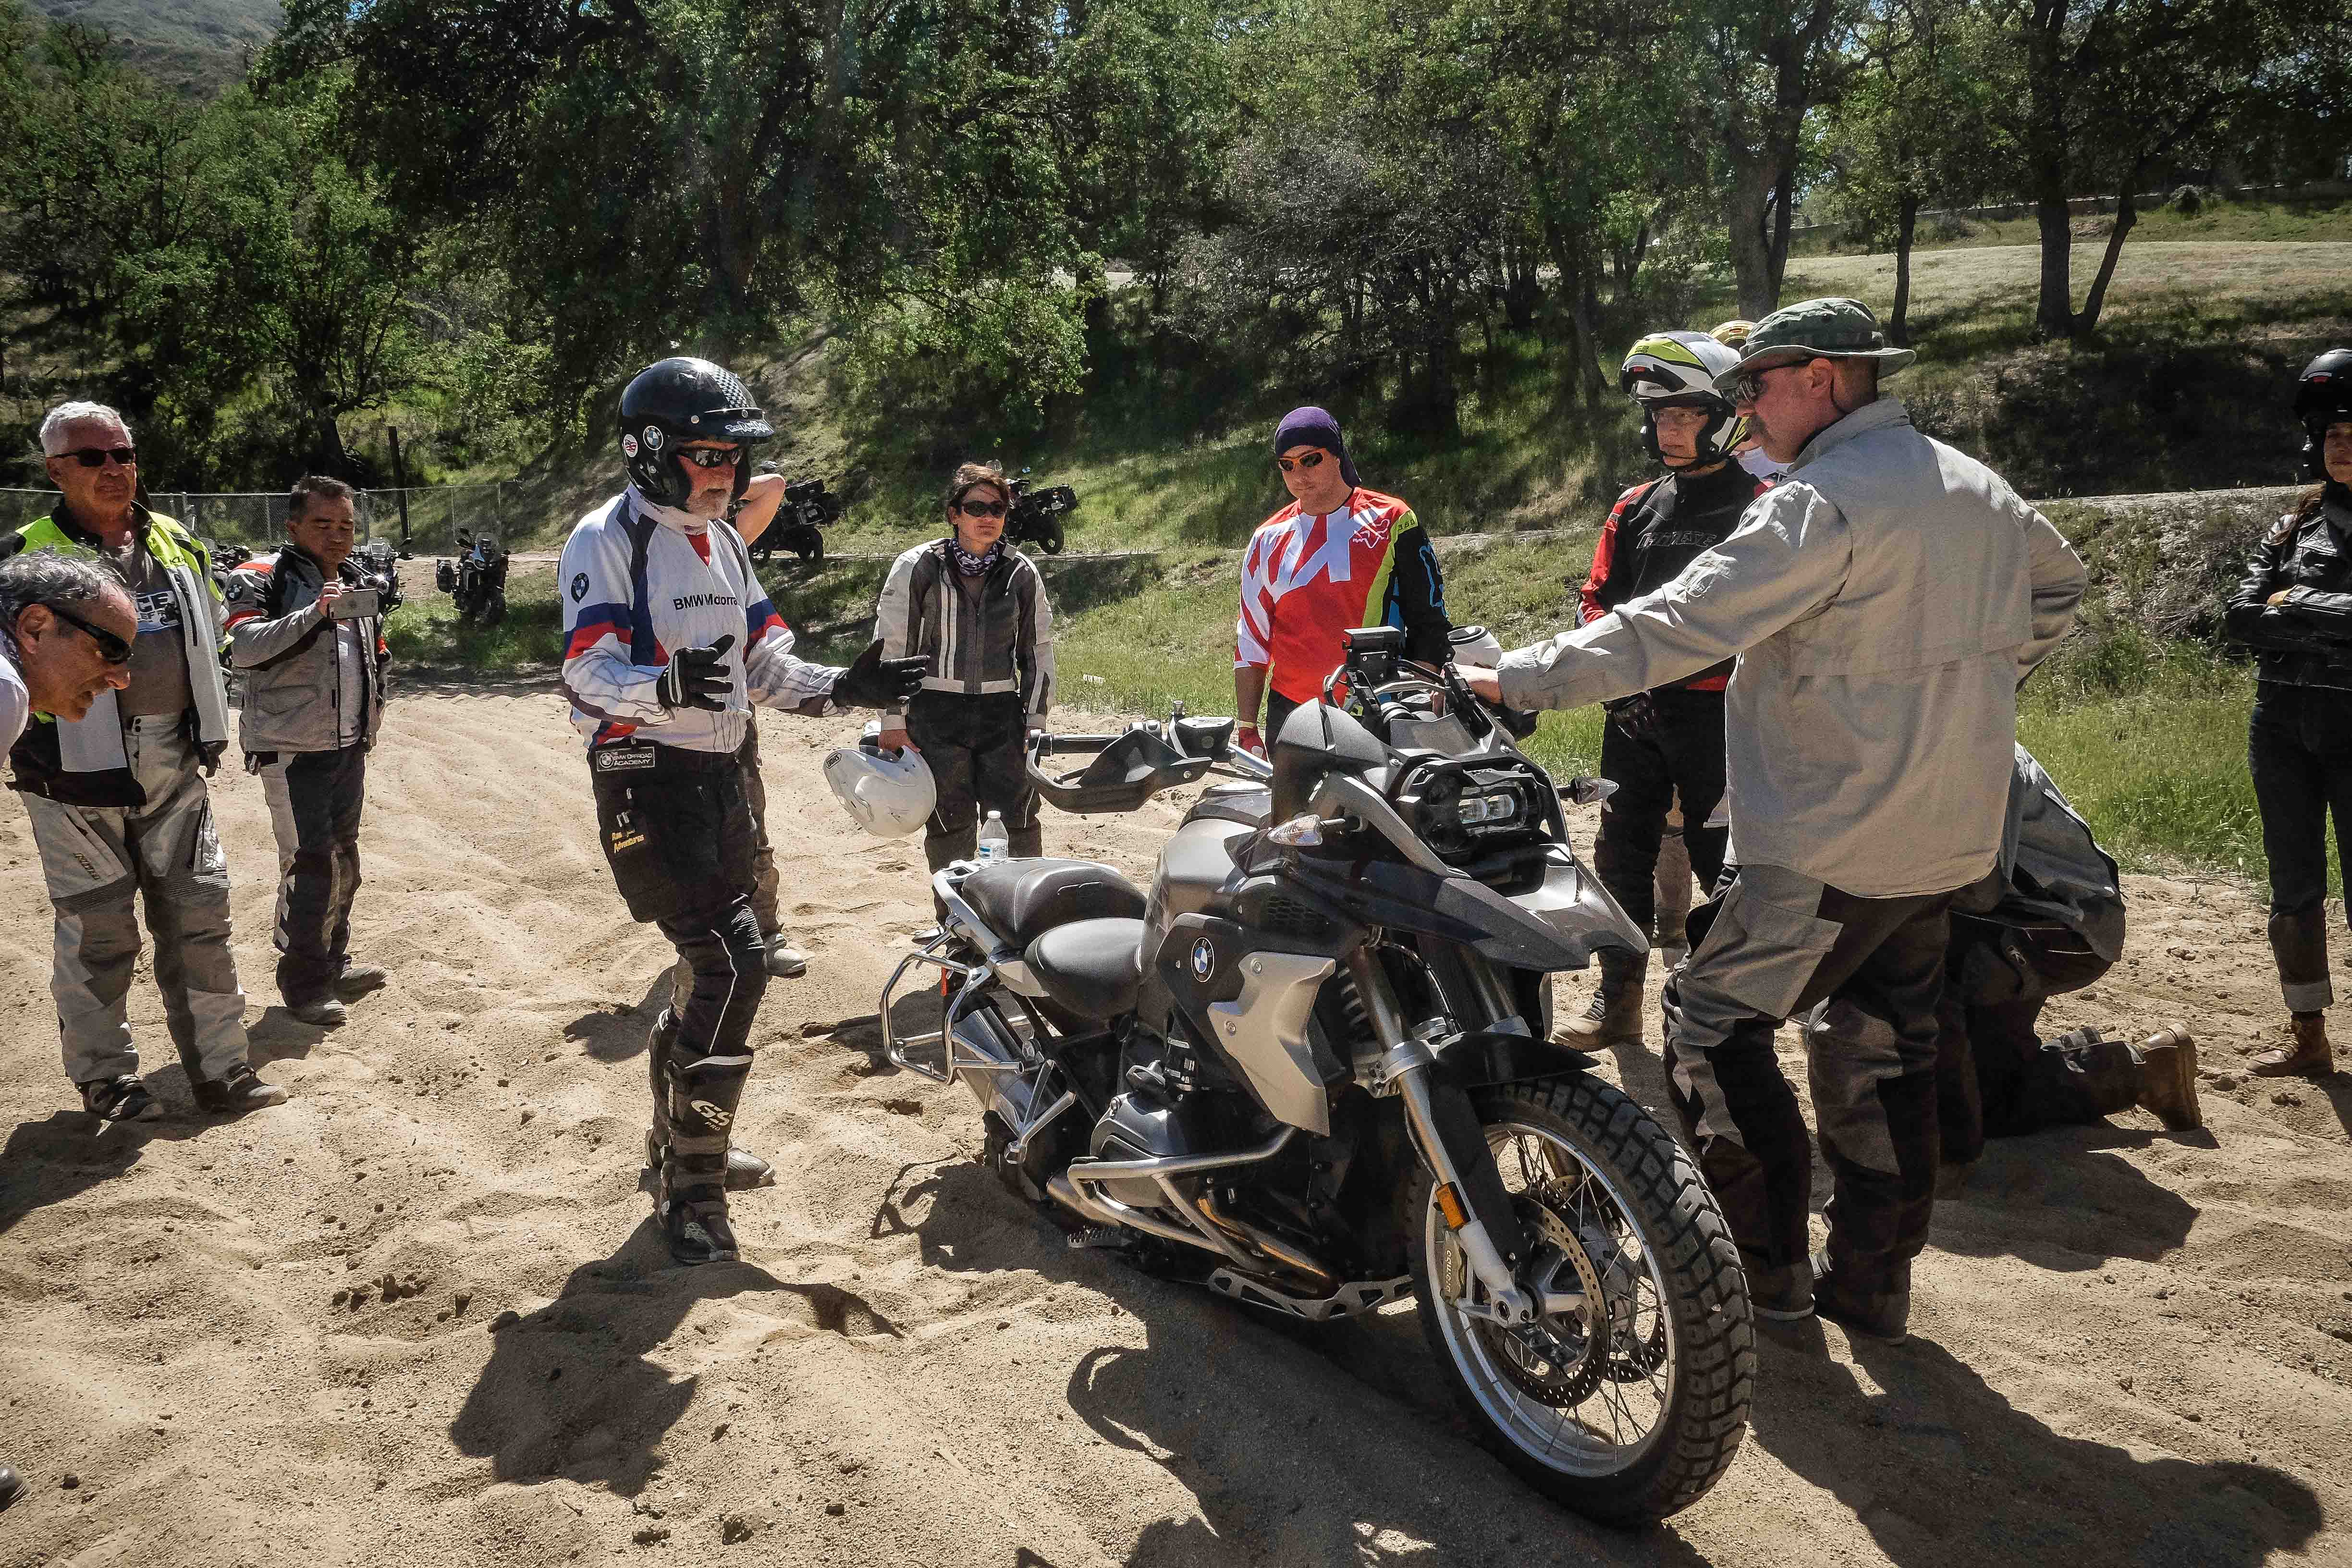 Coach Bill begins his hands on presentation to get the BMW R1200GS out of the sand